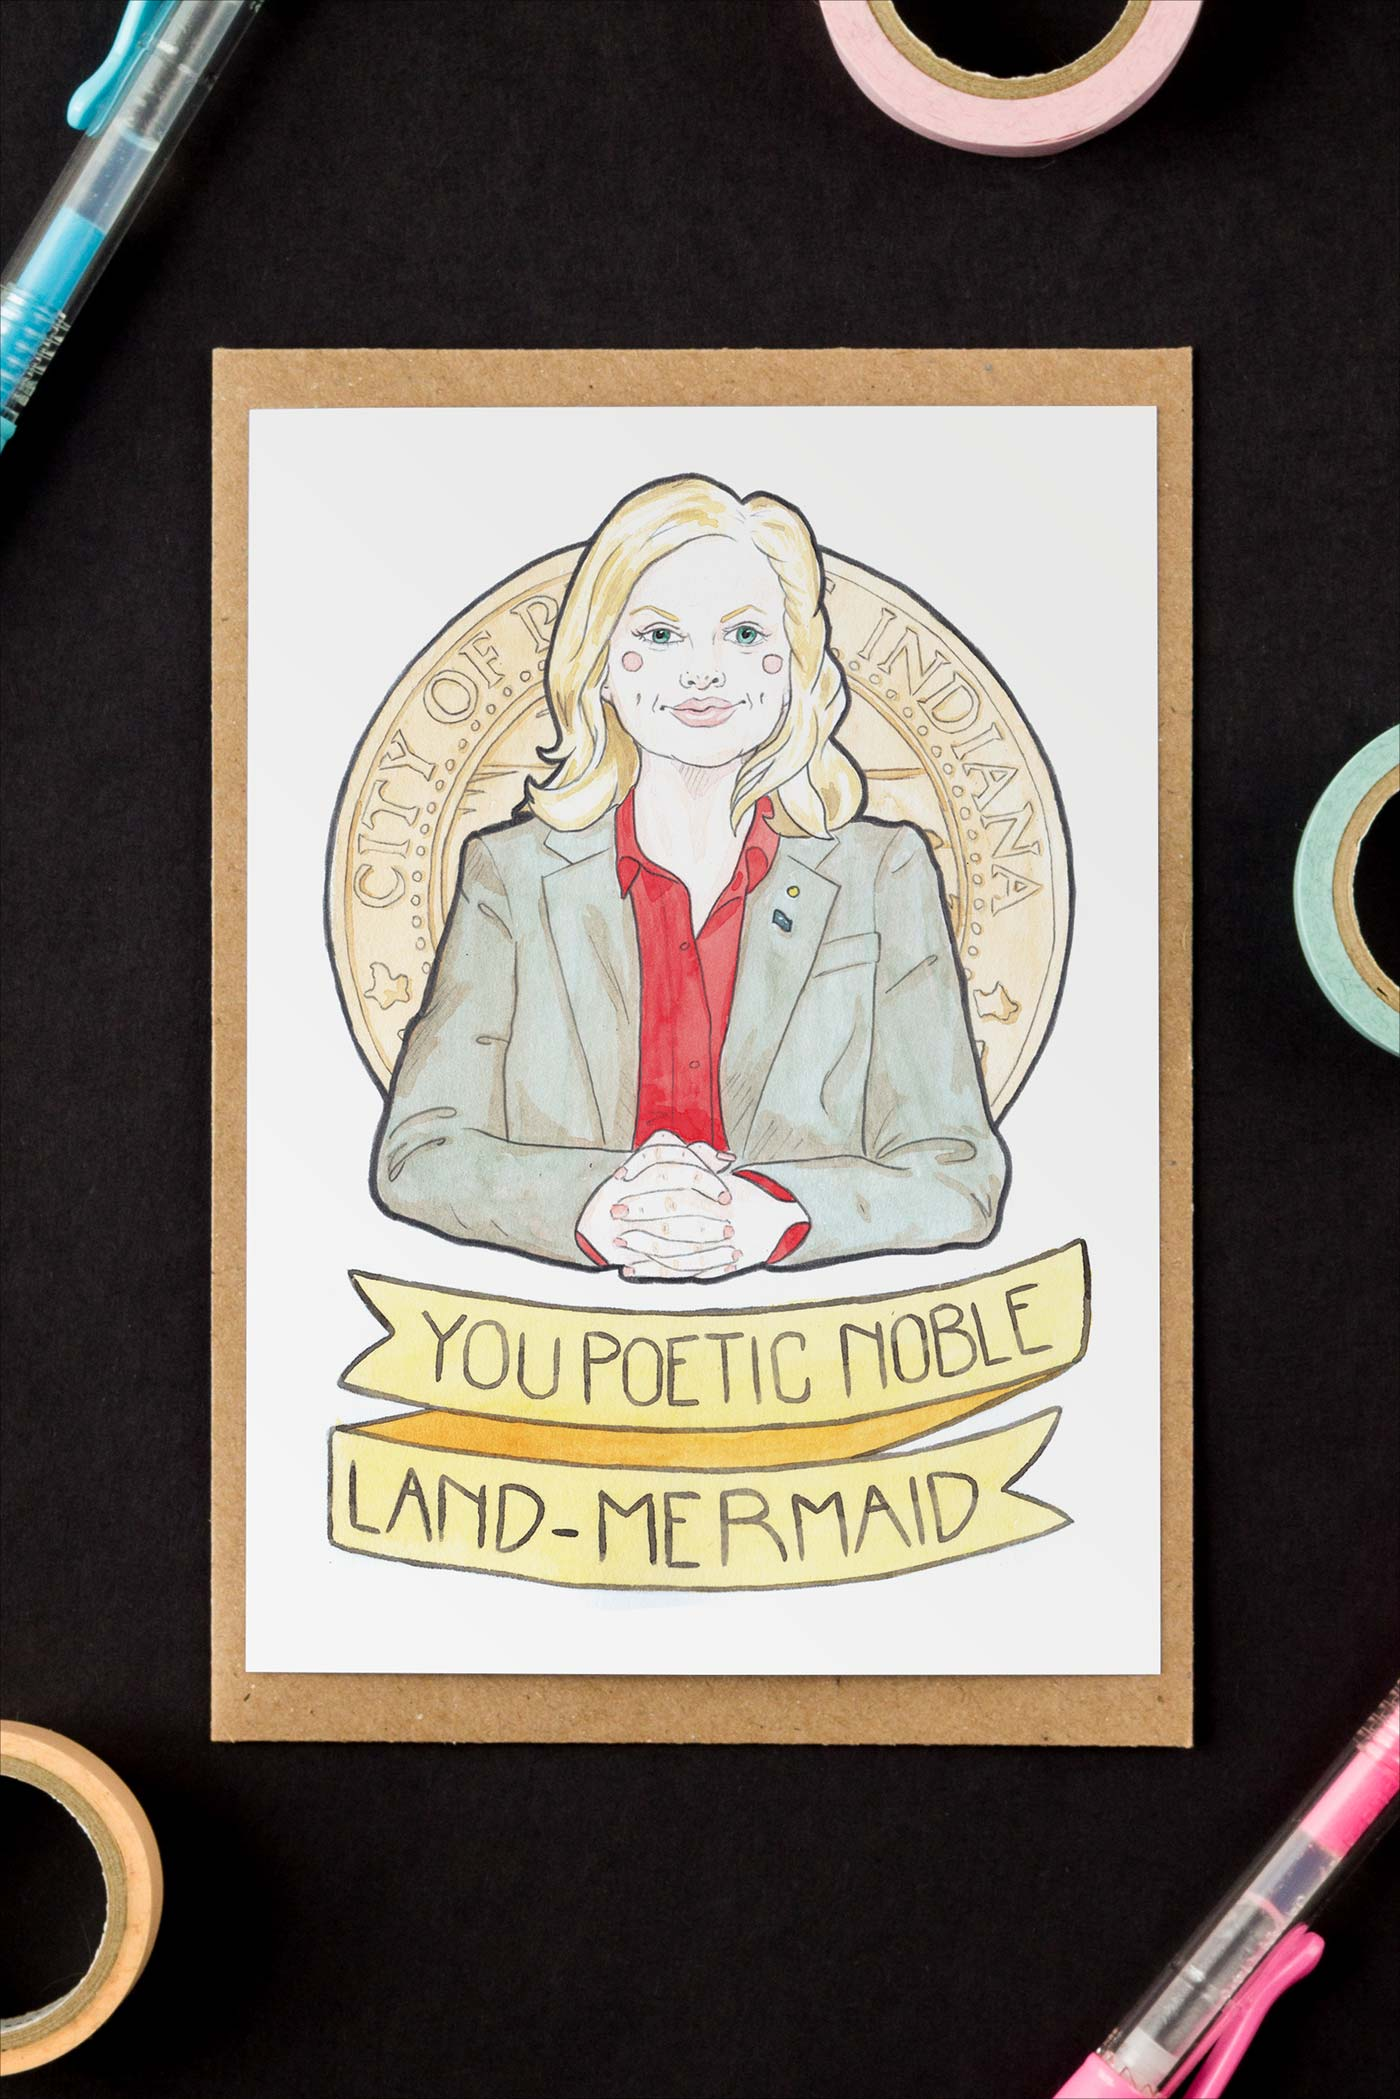 Leslie Knope / Parks & Rec Galentine's Day / Birthday / Friendship Greeting Card - A Rose Cast